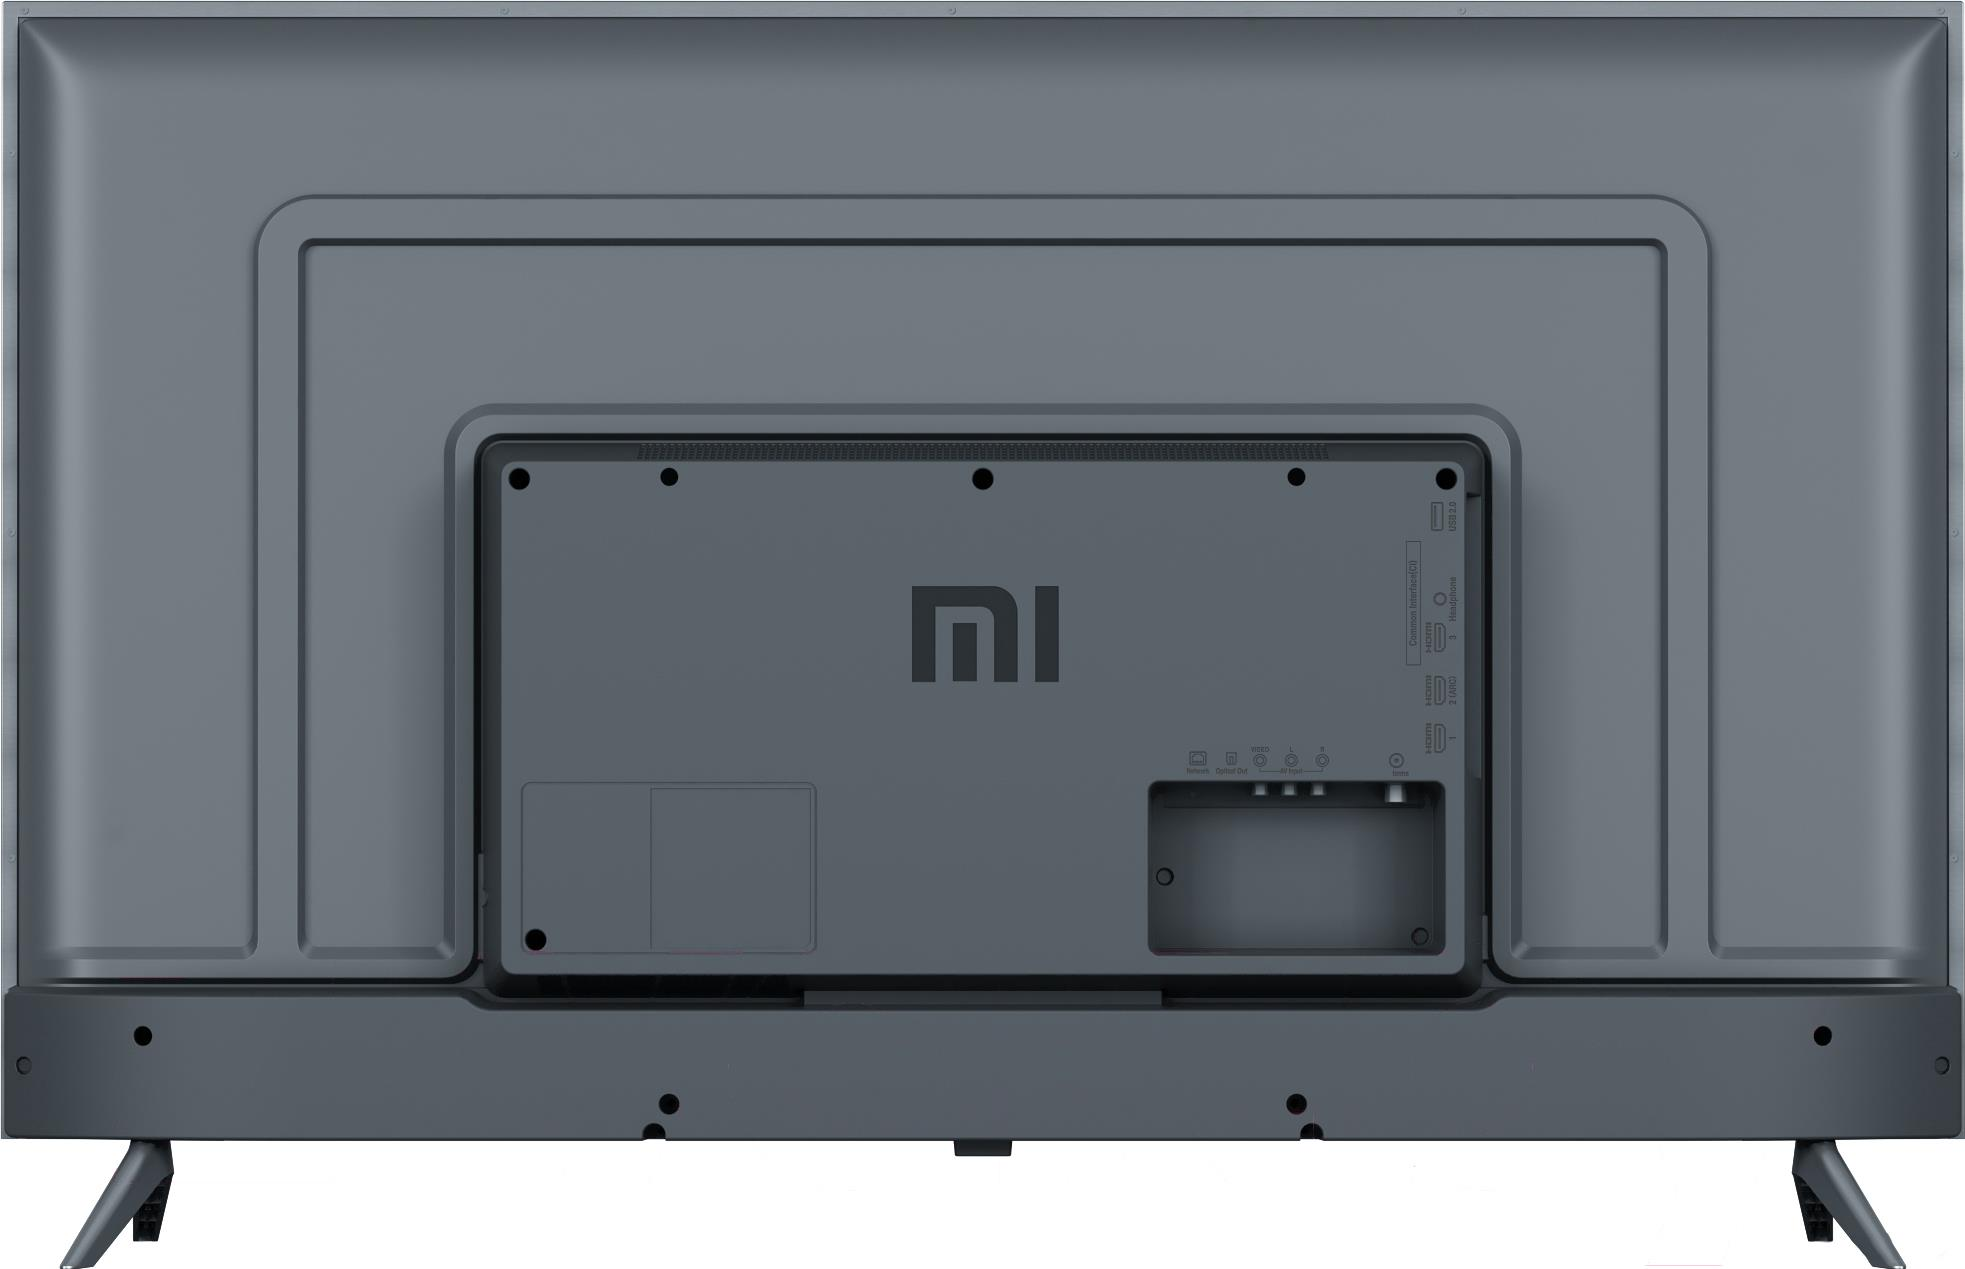 "Телевизор Xiaomi MI TV 4S 43"" (L43M5-5ARU), Black, СТБ"